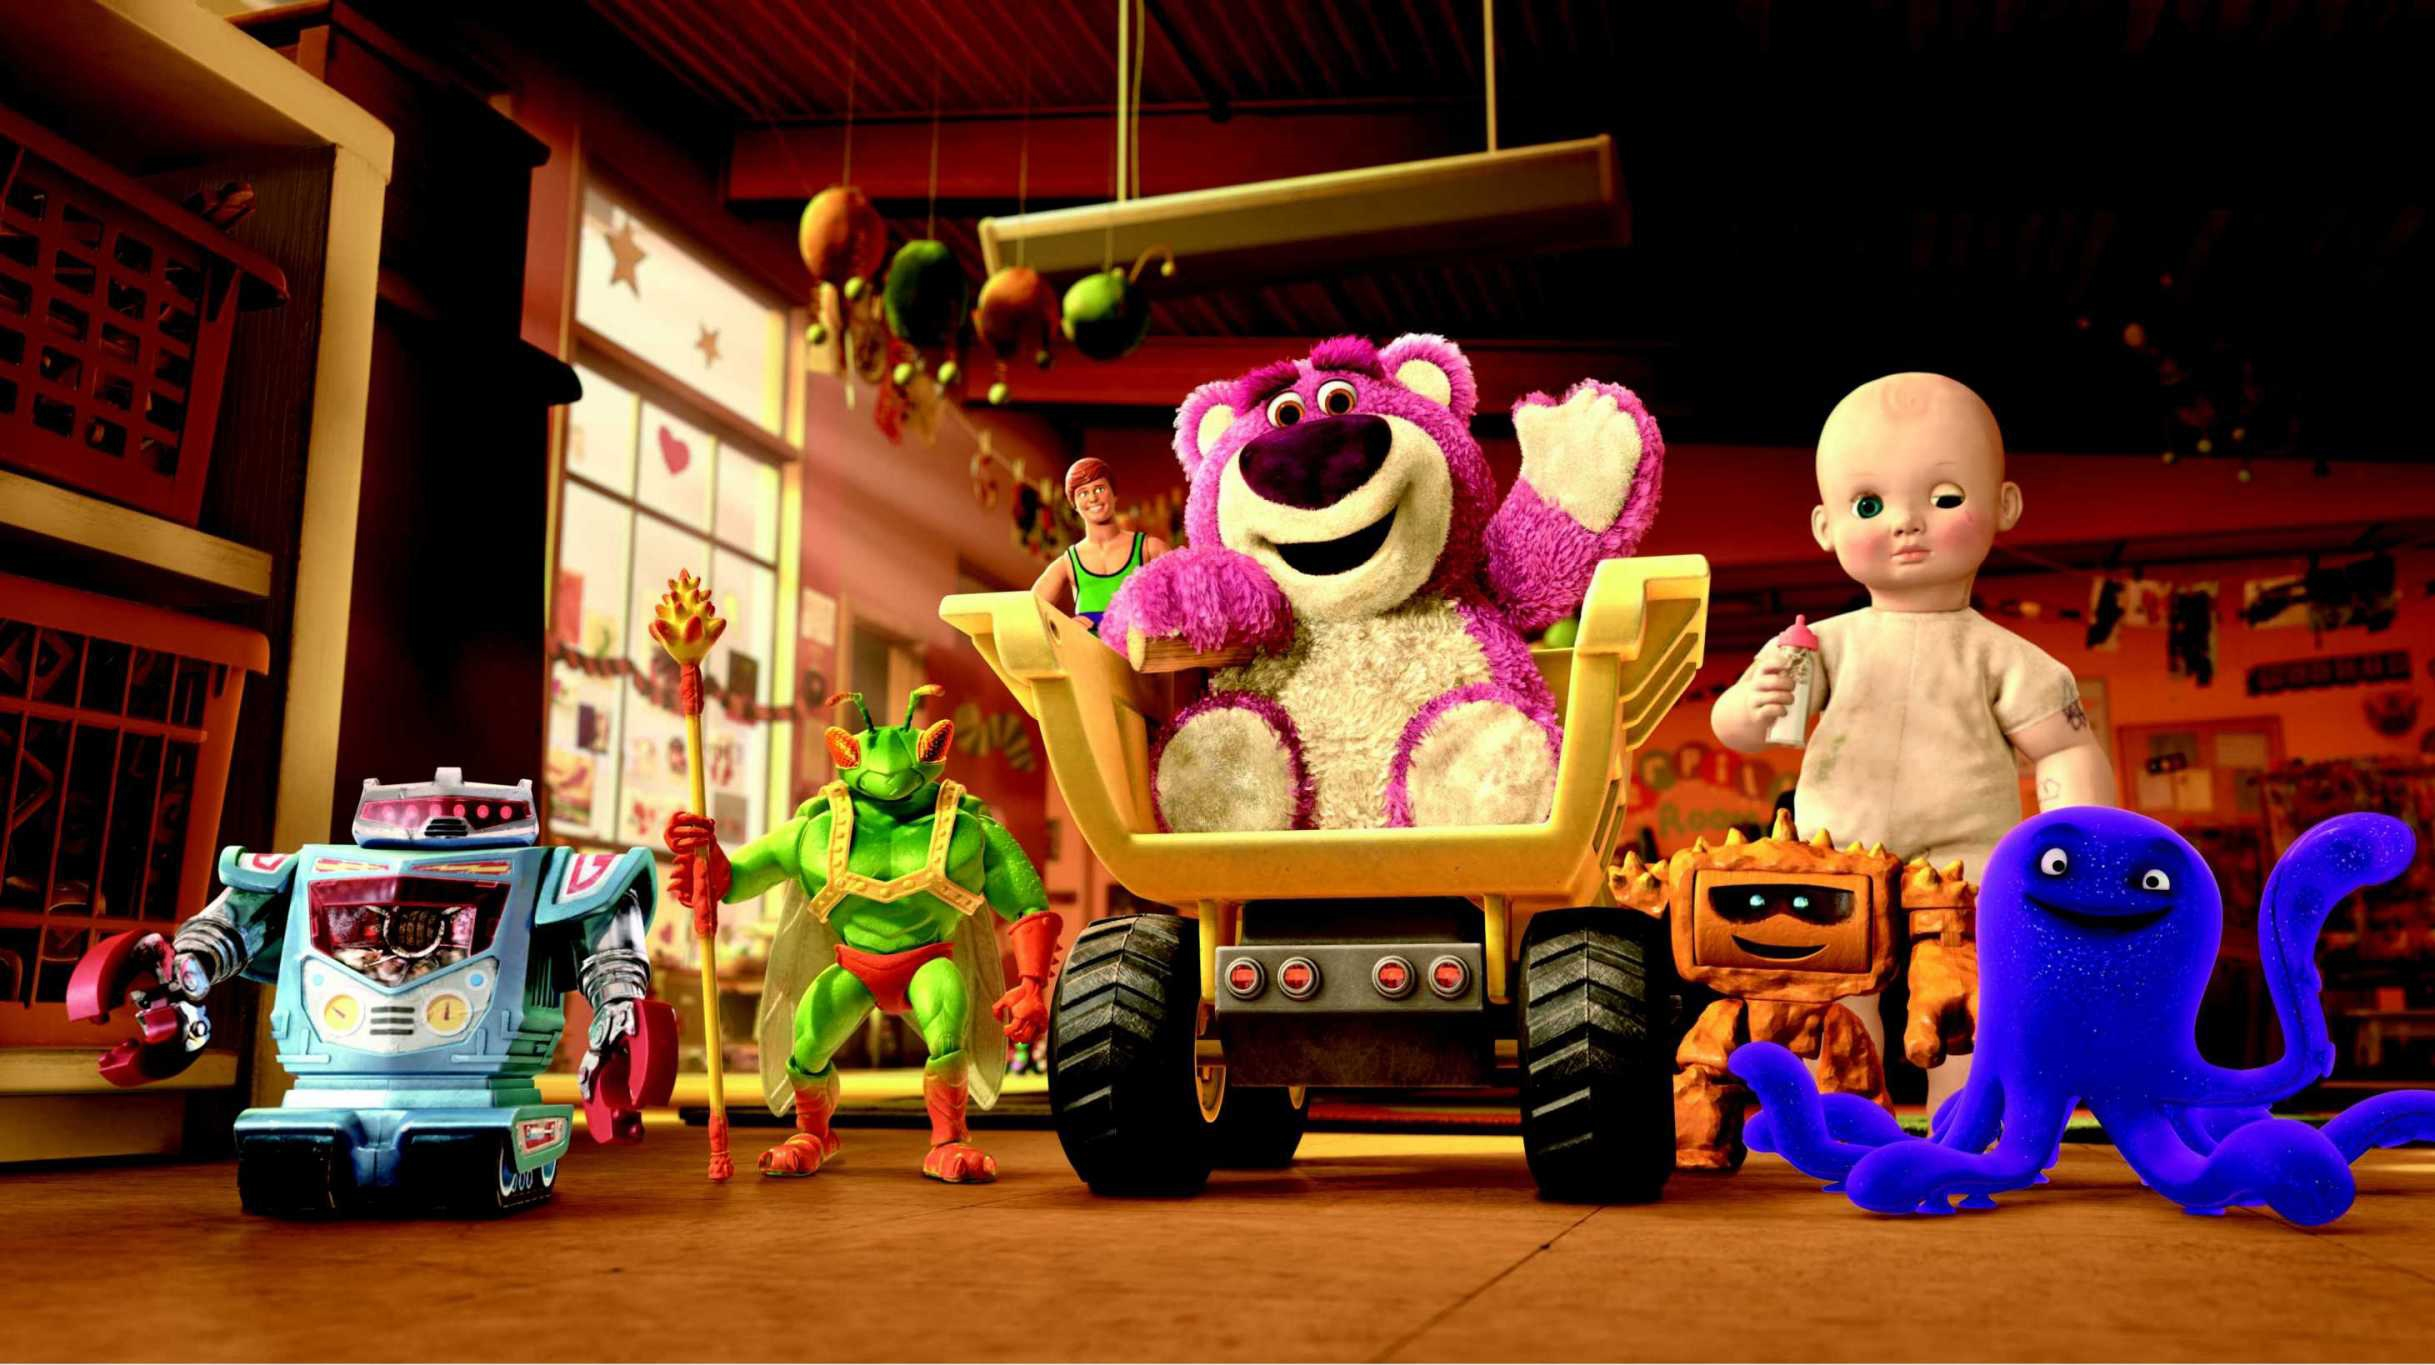 toy story 3 wallpaper background